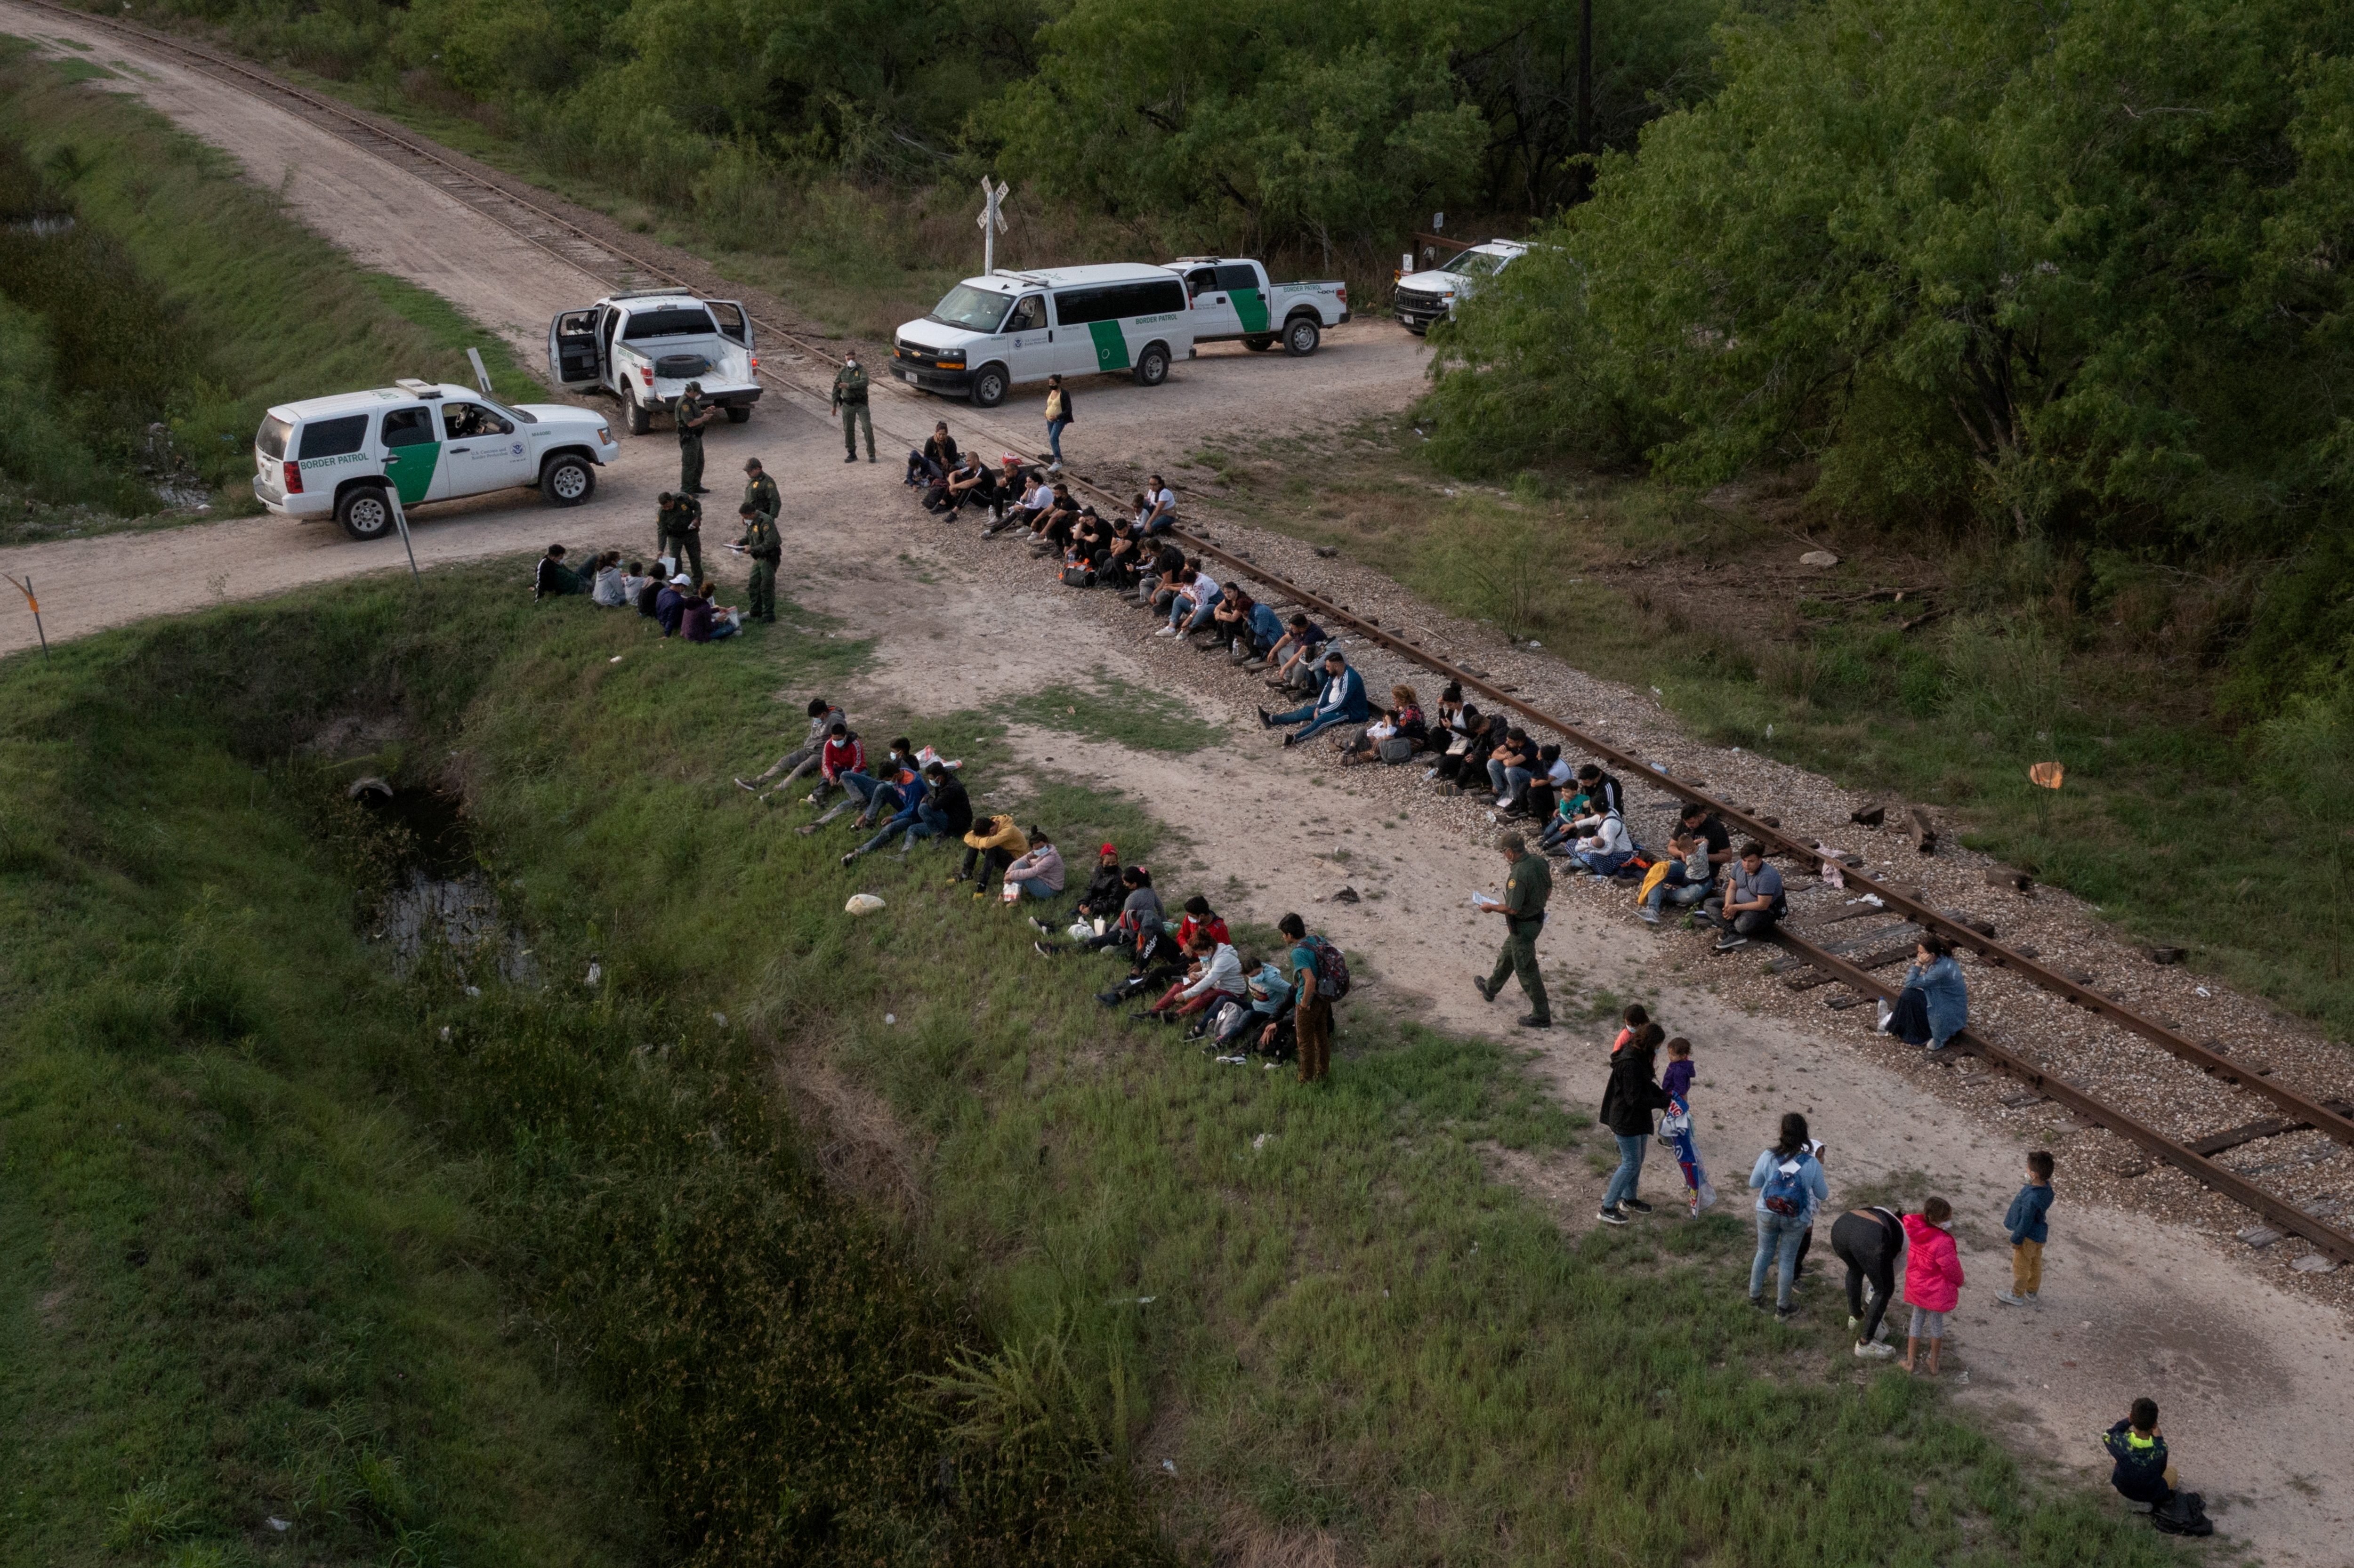 Dozens of asylum-seeking migrants from Romania, Armenia, and Central America, including a group of unaccompanied minors, await to be transported to a U.S. border patrol processing facility after crossing the Rio Grande river into the United States from Mexico on a raft in La Joya, Texas, U.S., May 5, 2021. Picture taken with a drone. REUTERS/Adrees Latif/File Photo